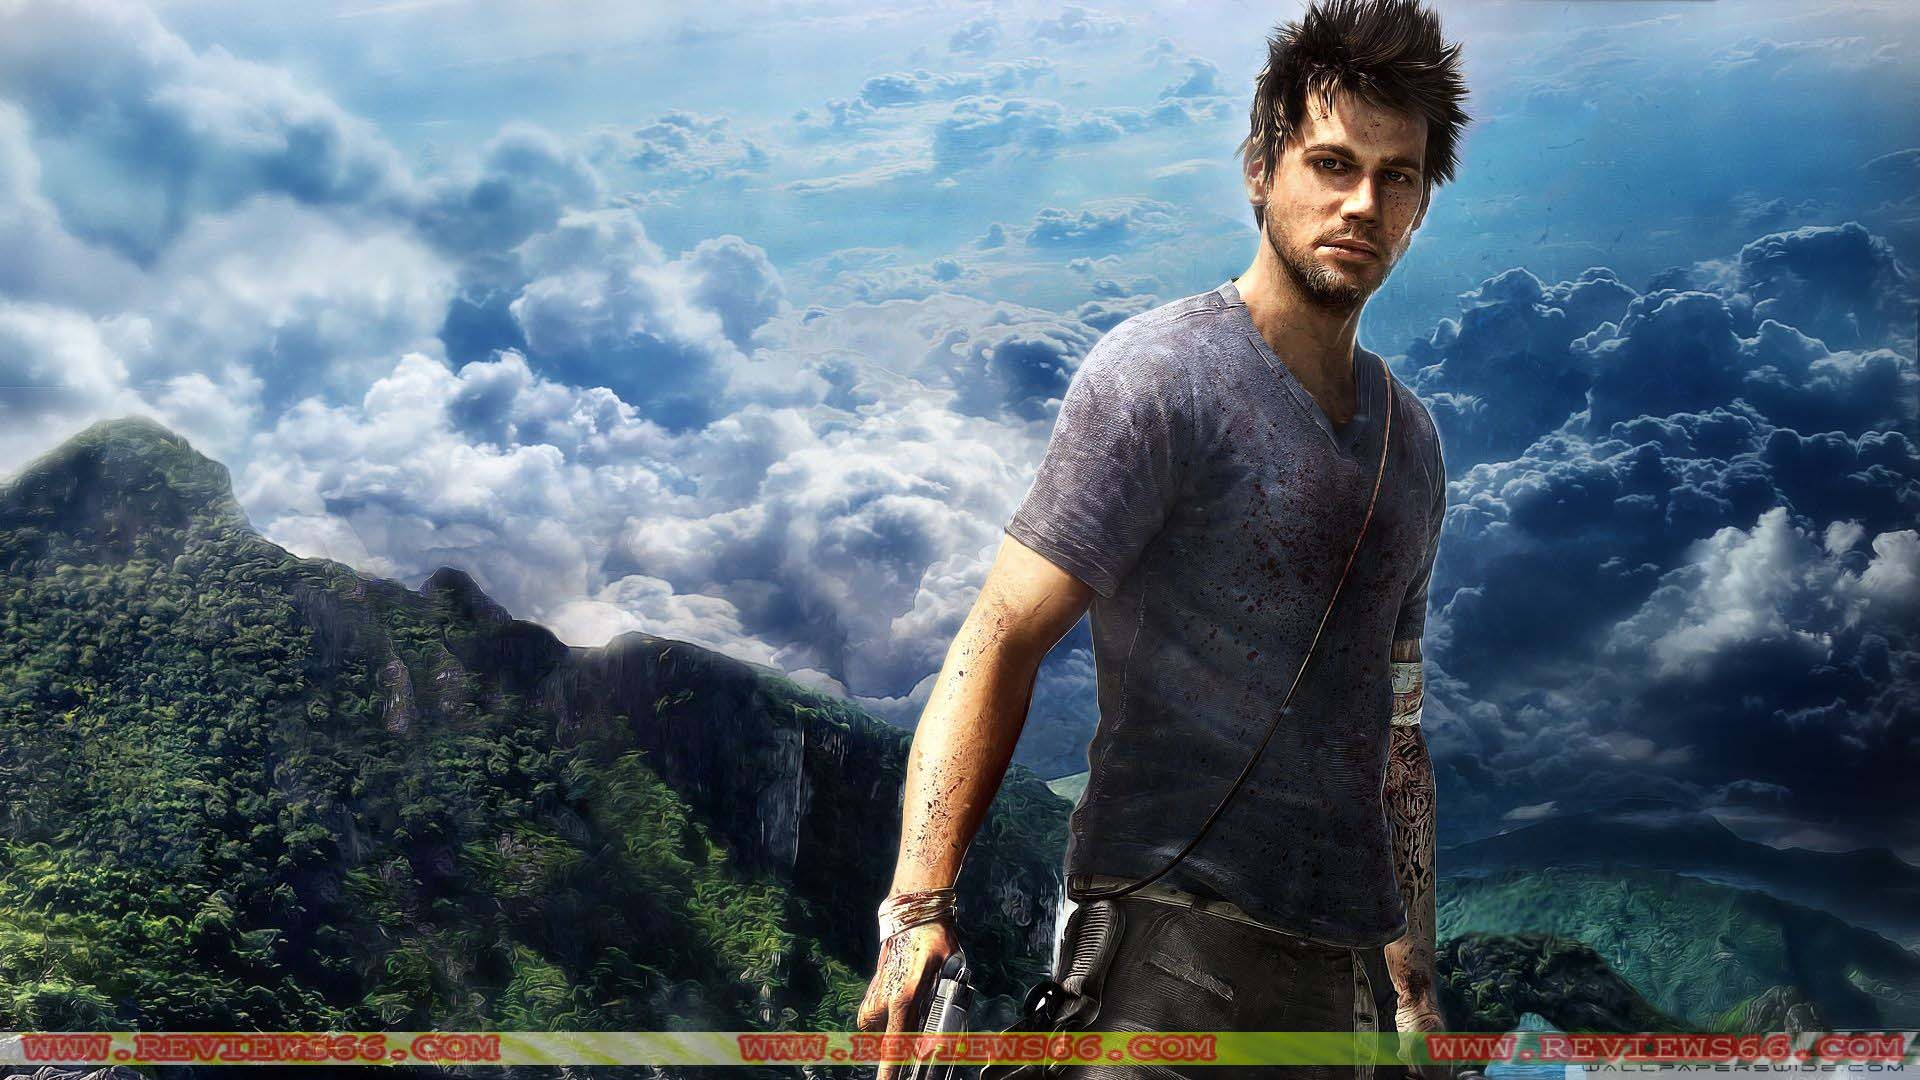 Far Cry 3 Wallpapers HD Latest Wide Screen Wallpapers 1920x1080